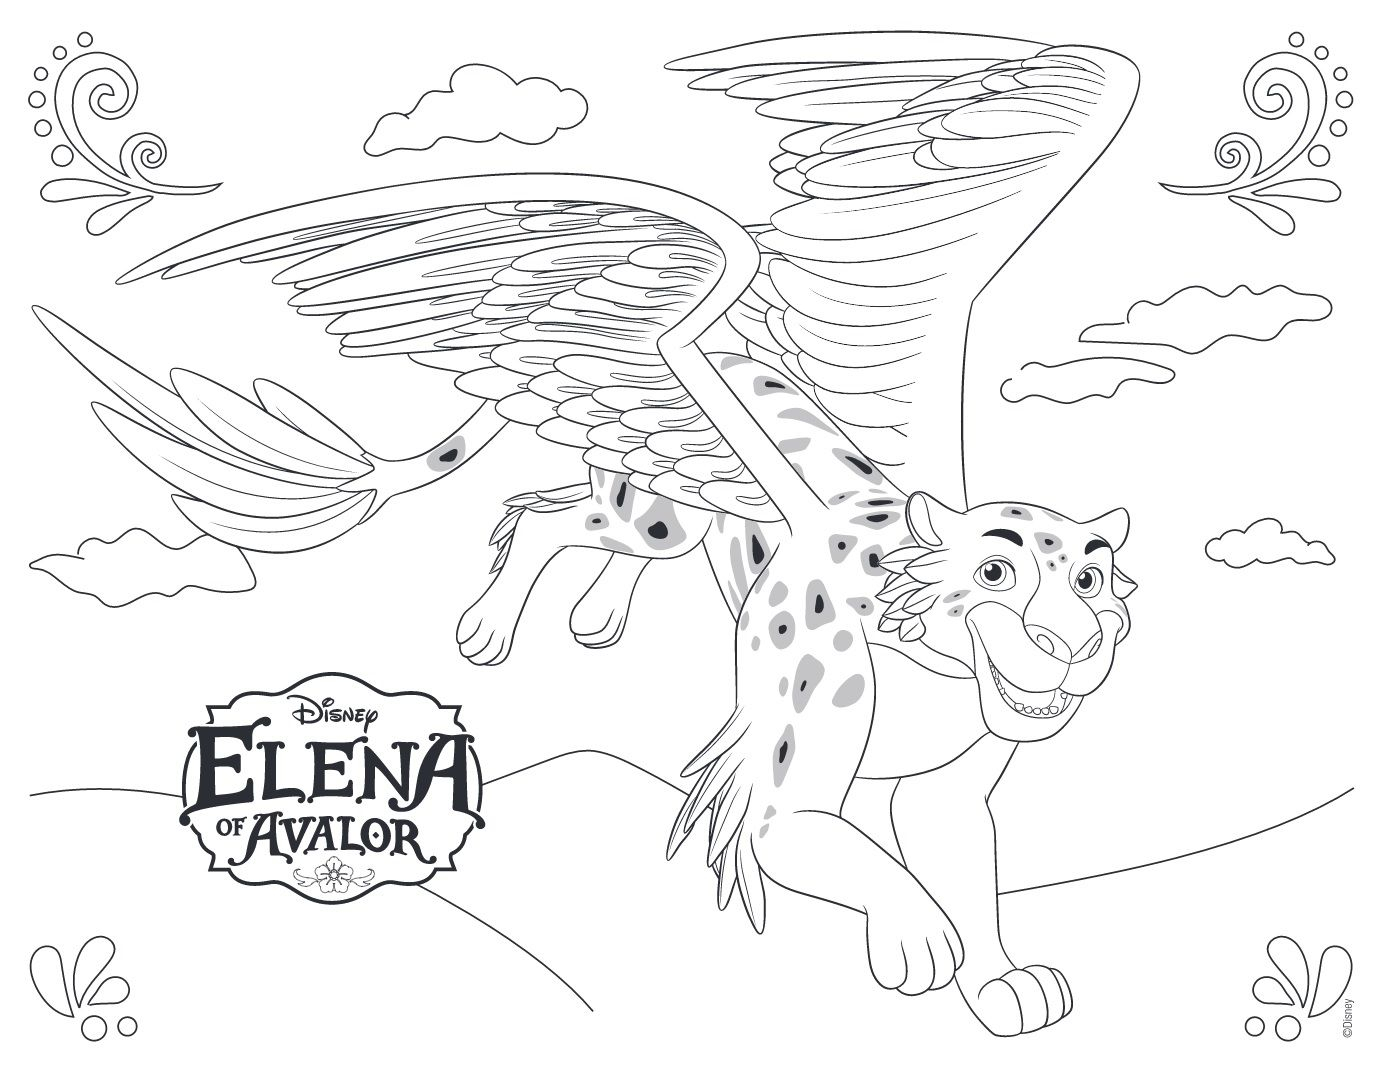 elena of avalor coloring pages to print Collection-Elena of Avalor Disney Coloring Pages 13-d